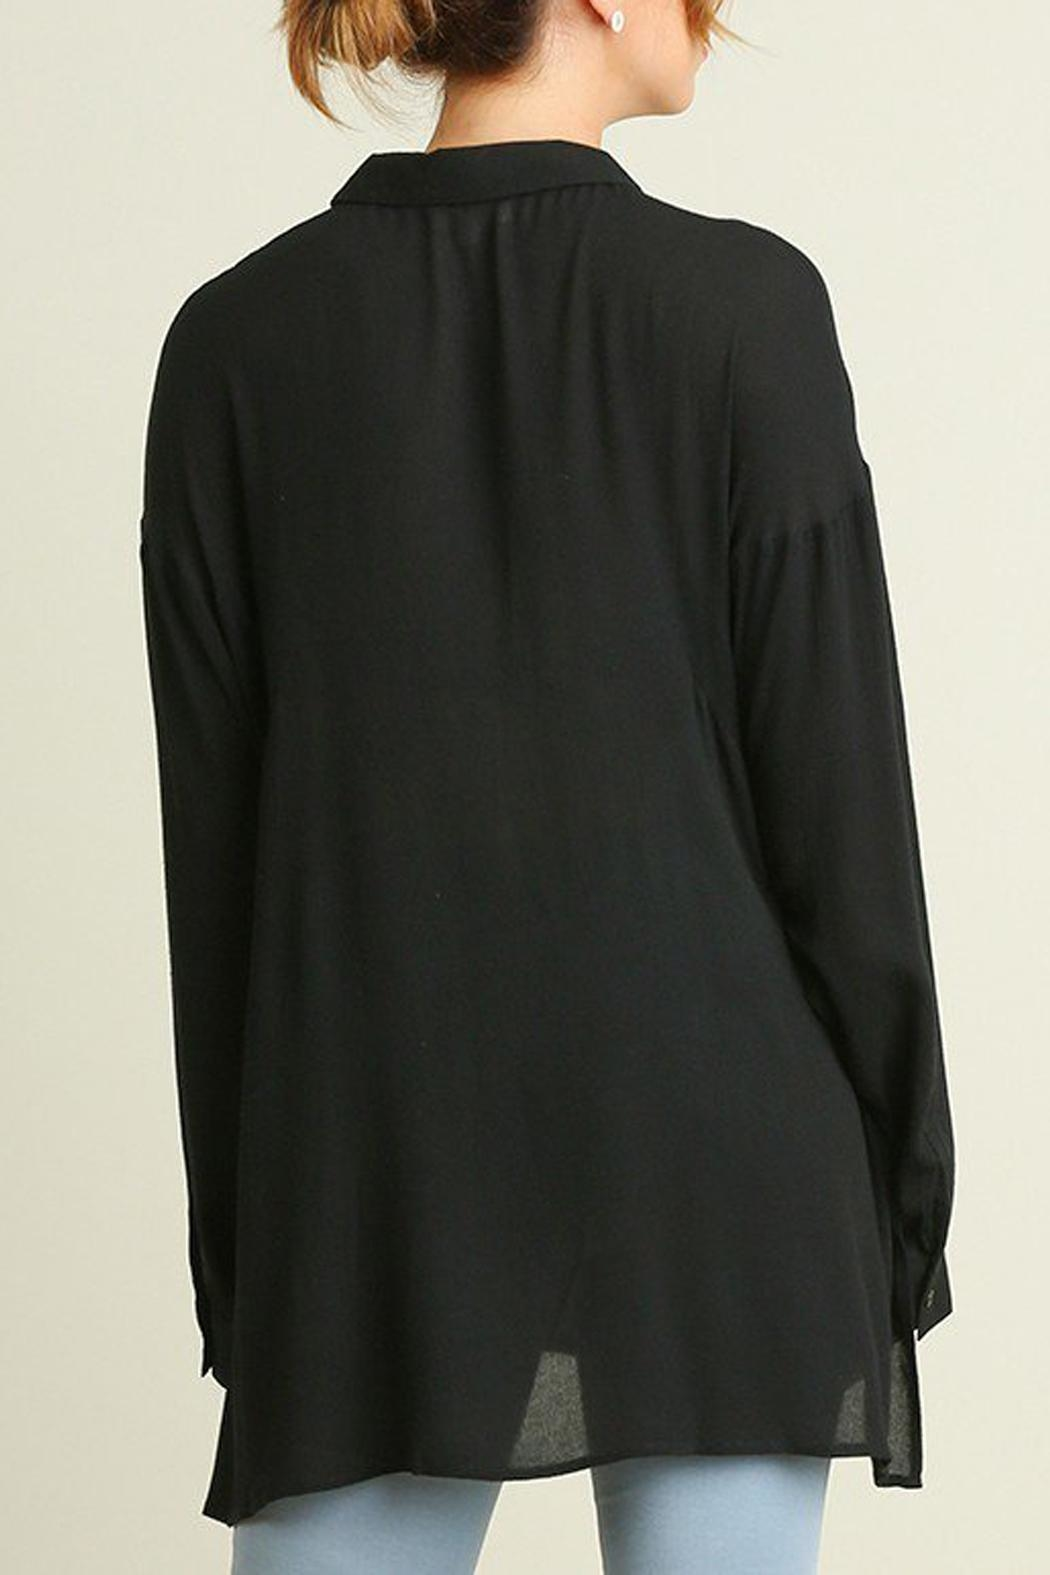 Umgee USA Black Blouse Side-Slit - Front Full Image